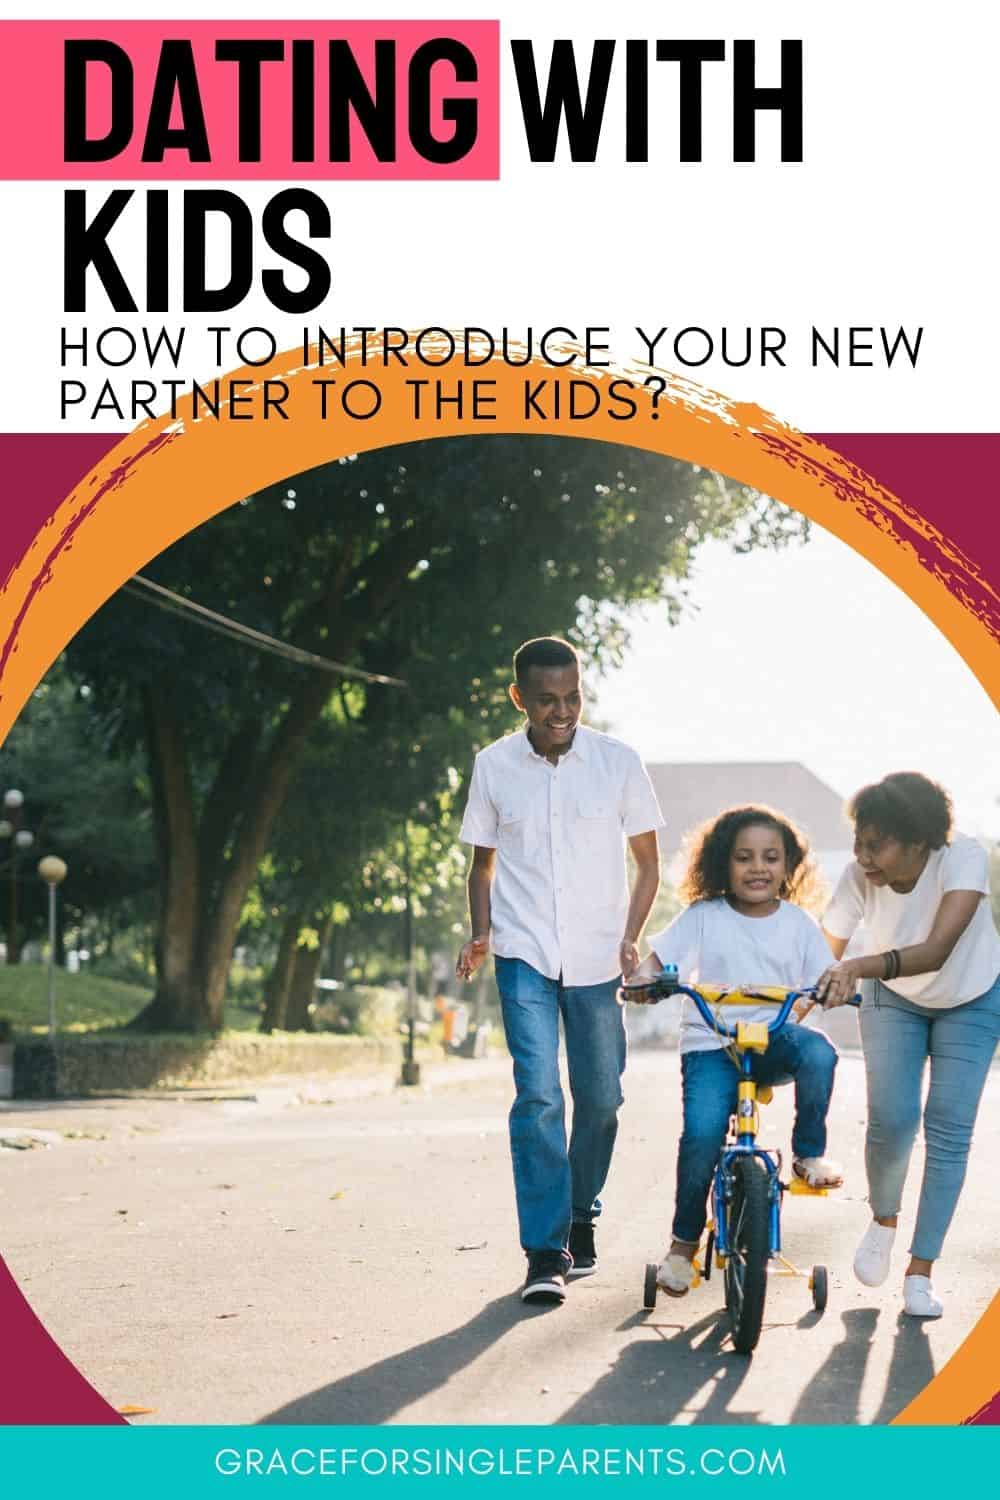 Dating with Kids: Rules for Introducing Your New Partner to Your Children